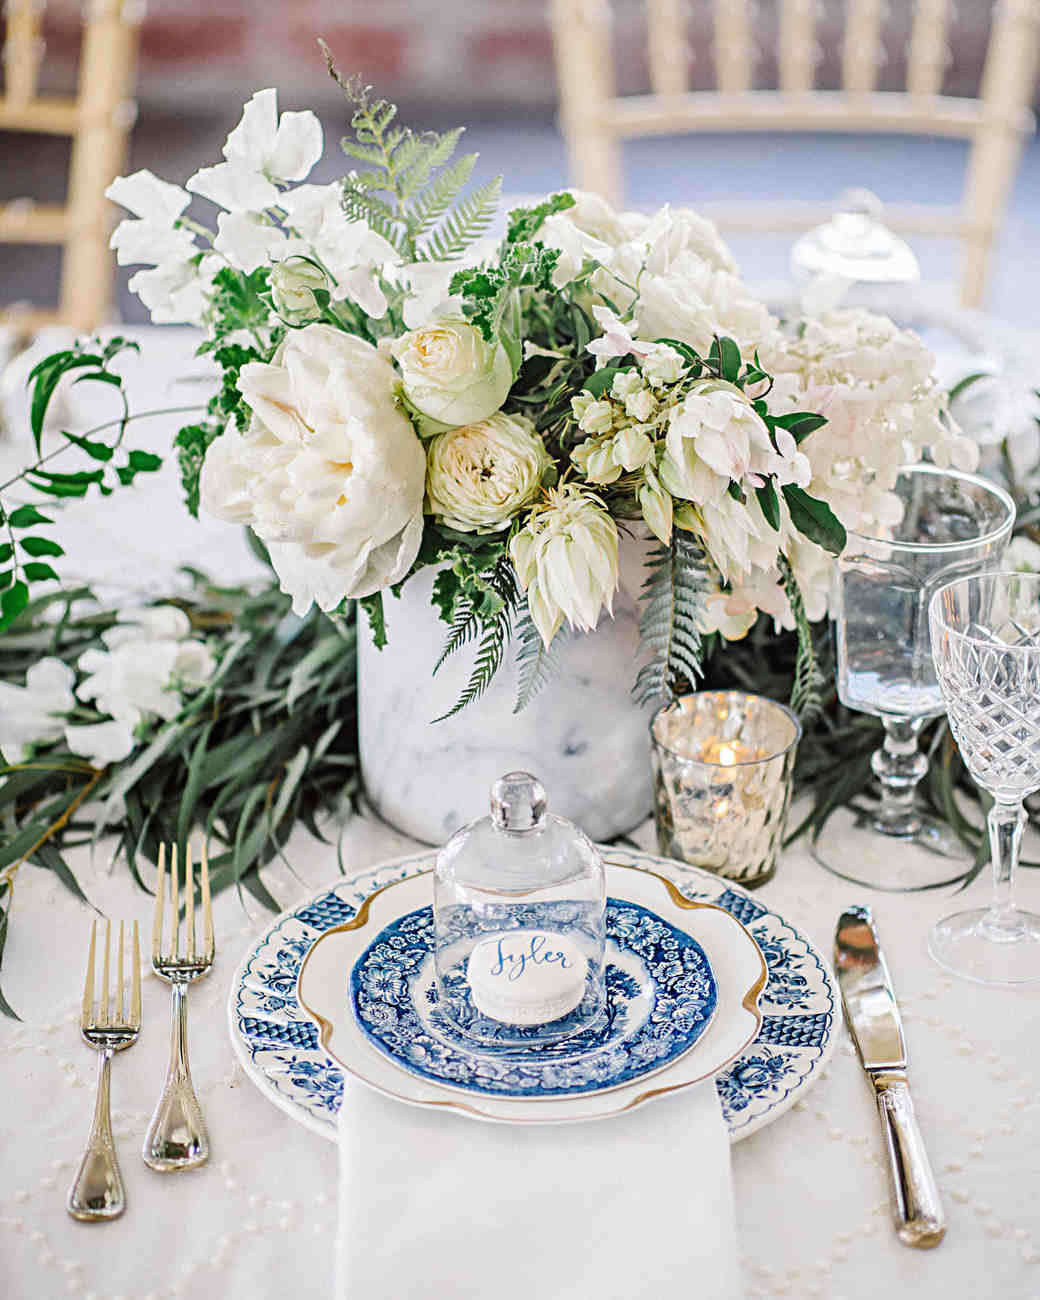 rose gold wedding vases of 79 white wedding centerpieces martha stewart weddings intended for hannah steve wedding california china macarons